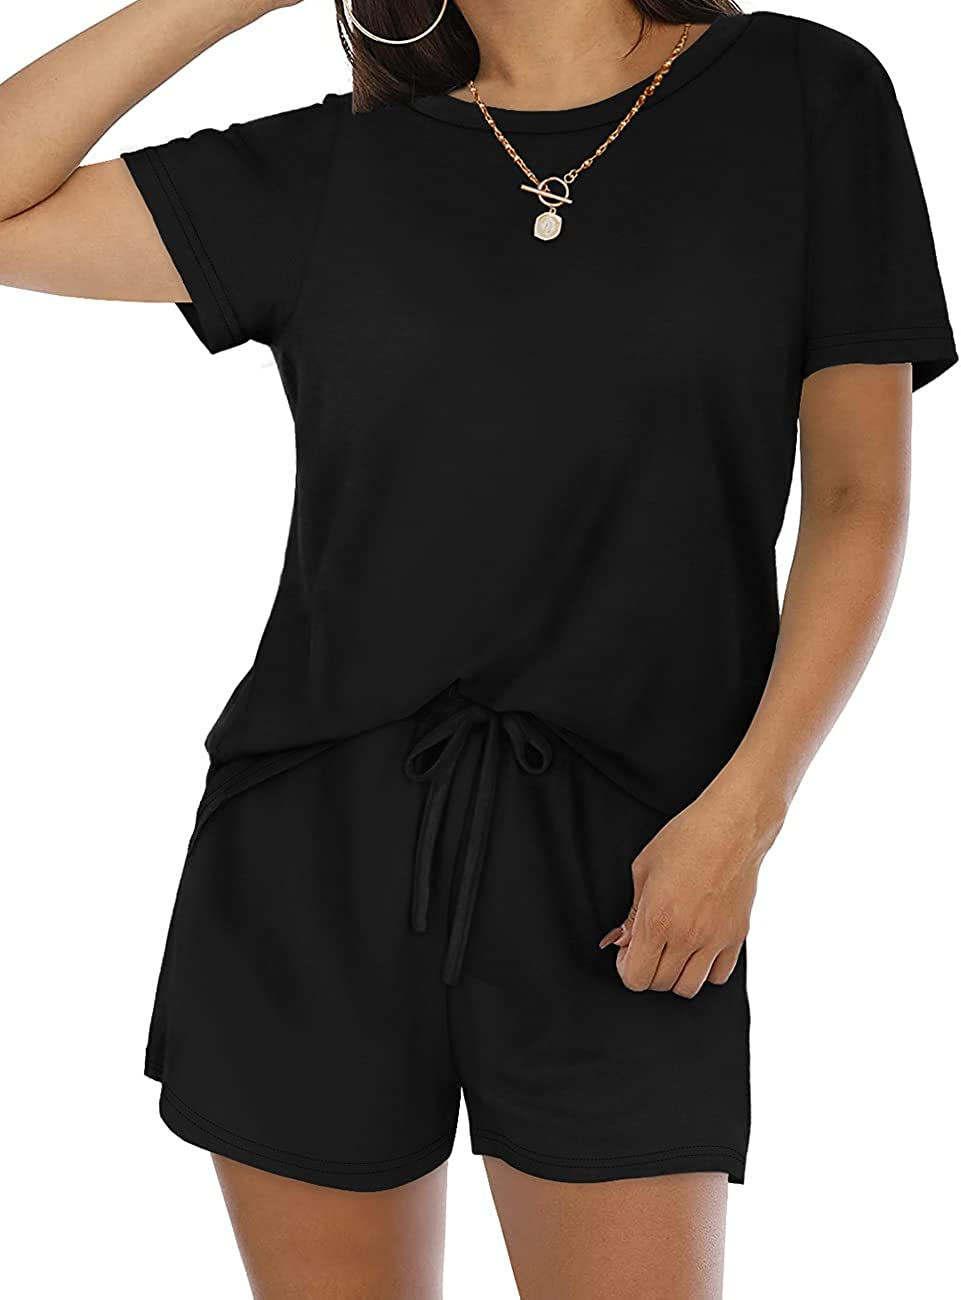 Sousuoty Womens Two Max 52% OFF Piece 2021 model Outfits with Shorts Pockets Set